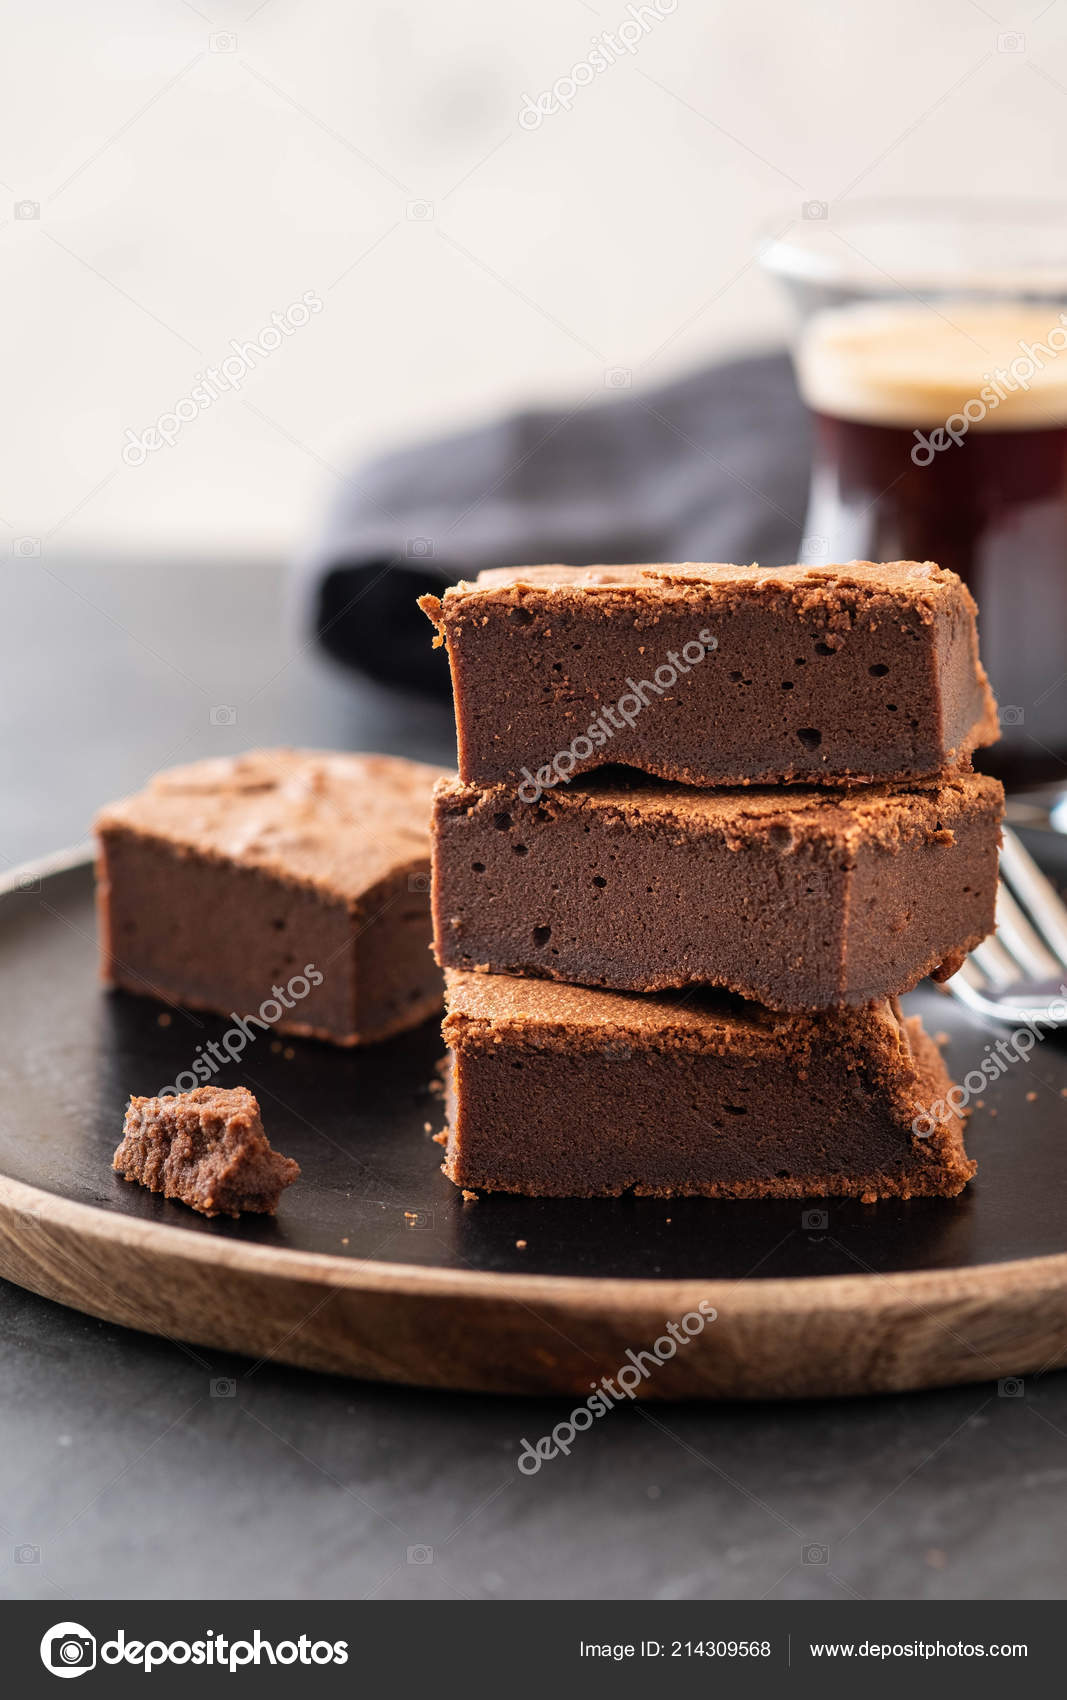 Double Chocolate Brownies. Homemade chocolate fudge brownies with chocolate chips and black background. Copy space.– stock image